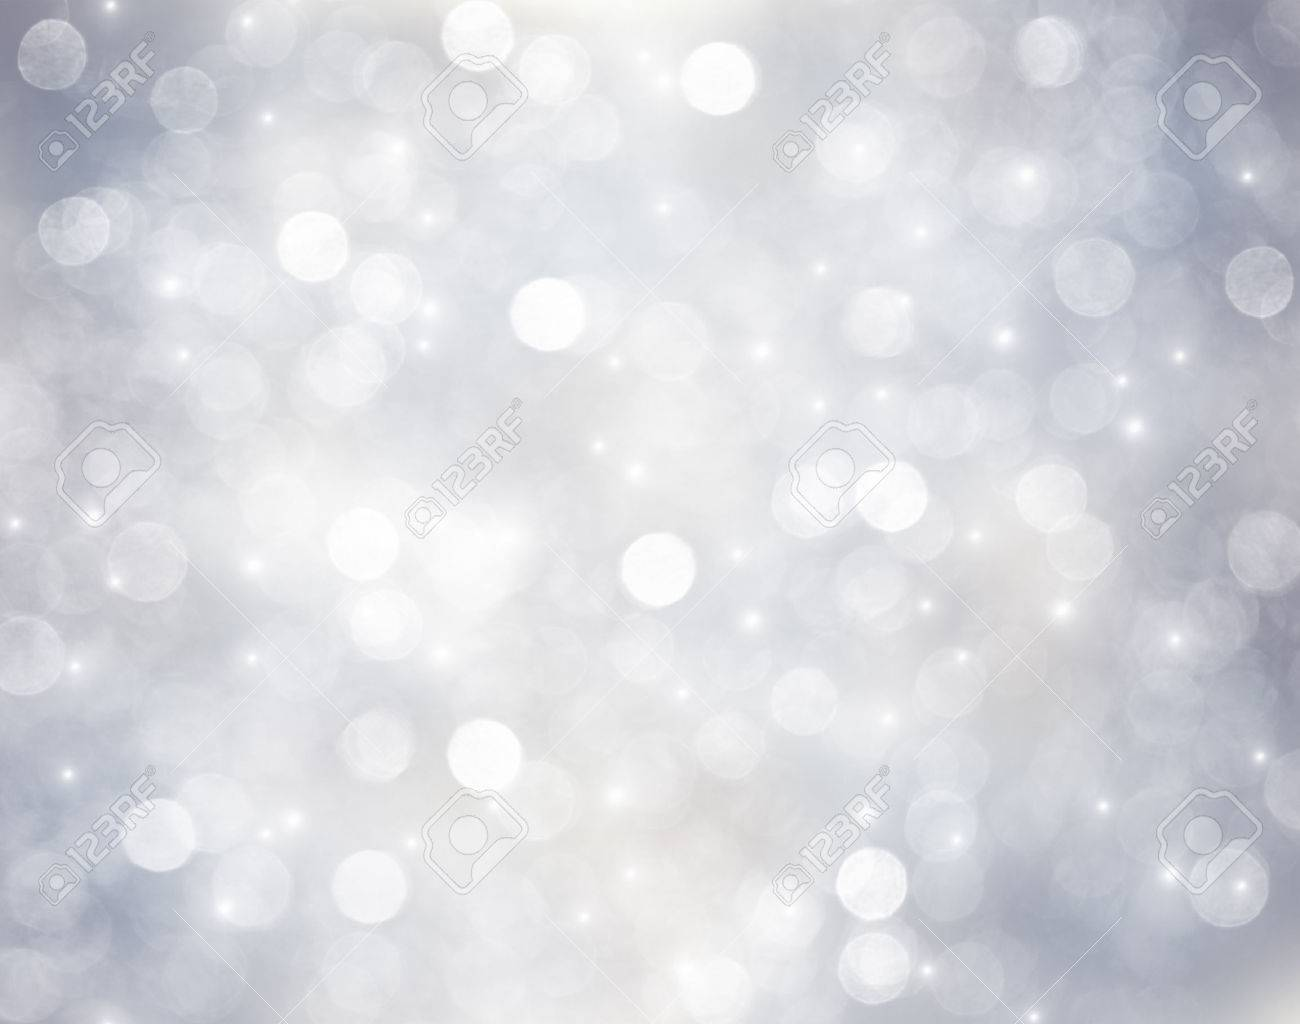 Decorative christmas background with bokeh lights and snowflakes Stock Photo - 47946060